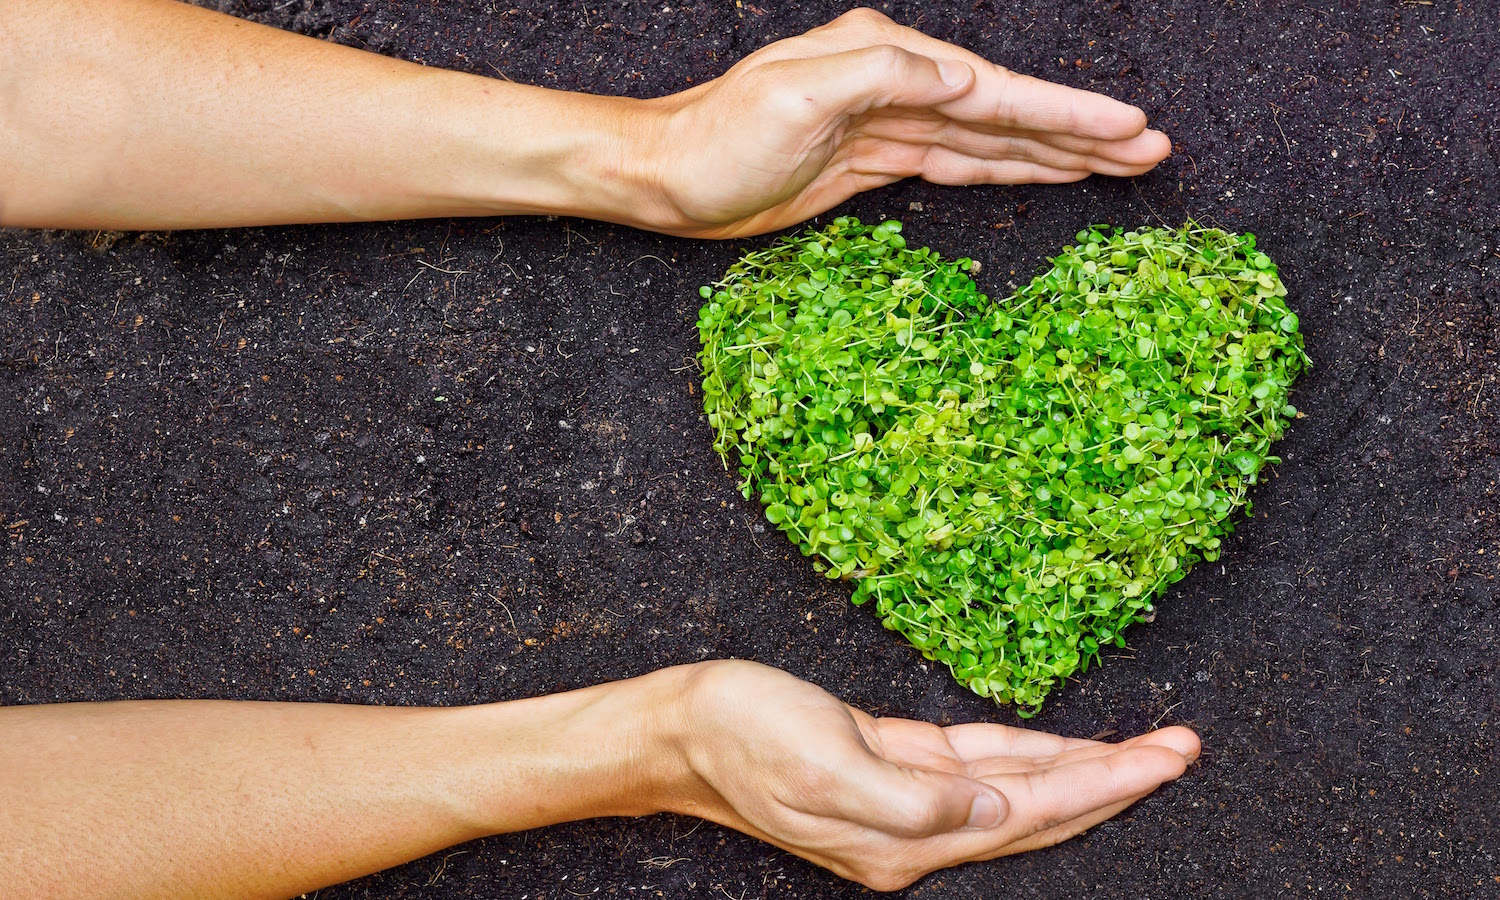 Celebrate Valentine's Day with lots of love and without the waste of plastic wrapped gifts. Food Tank lists activities that replace the waste!